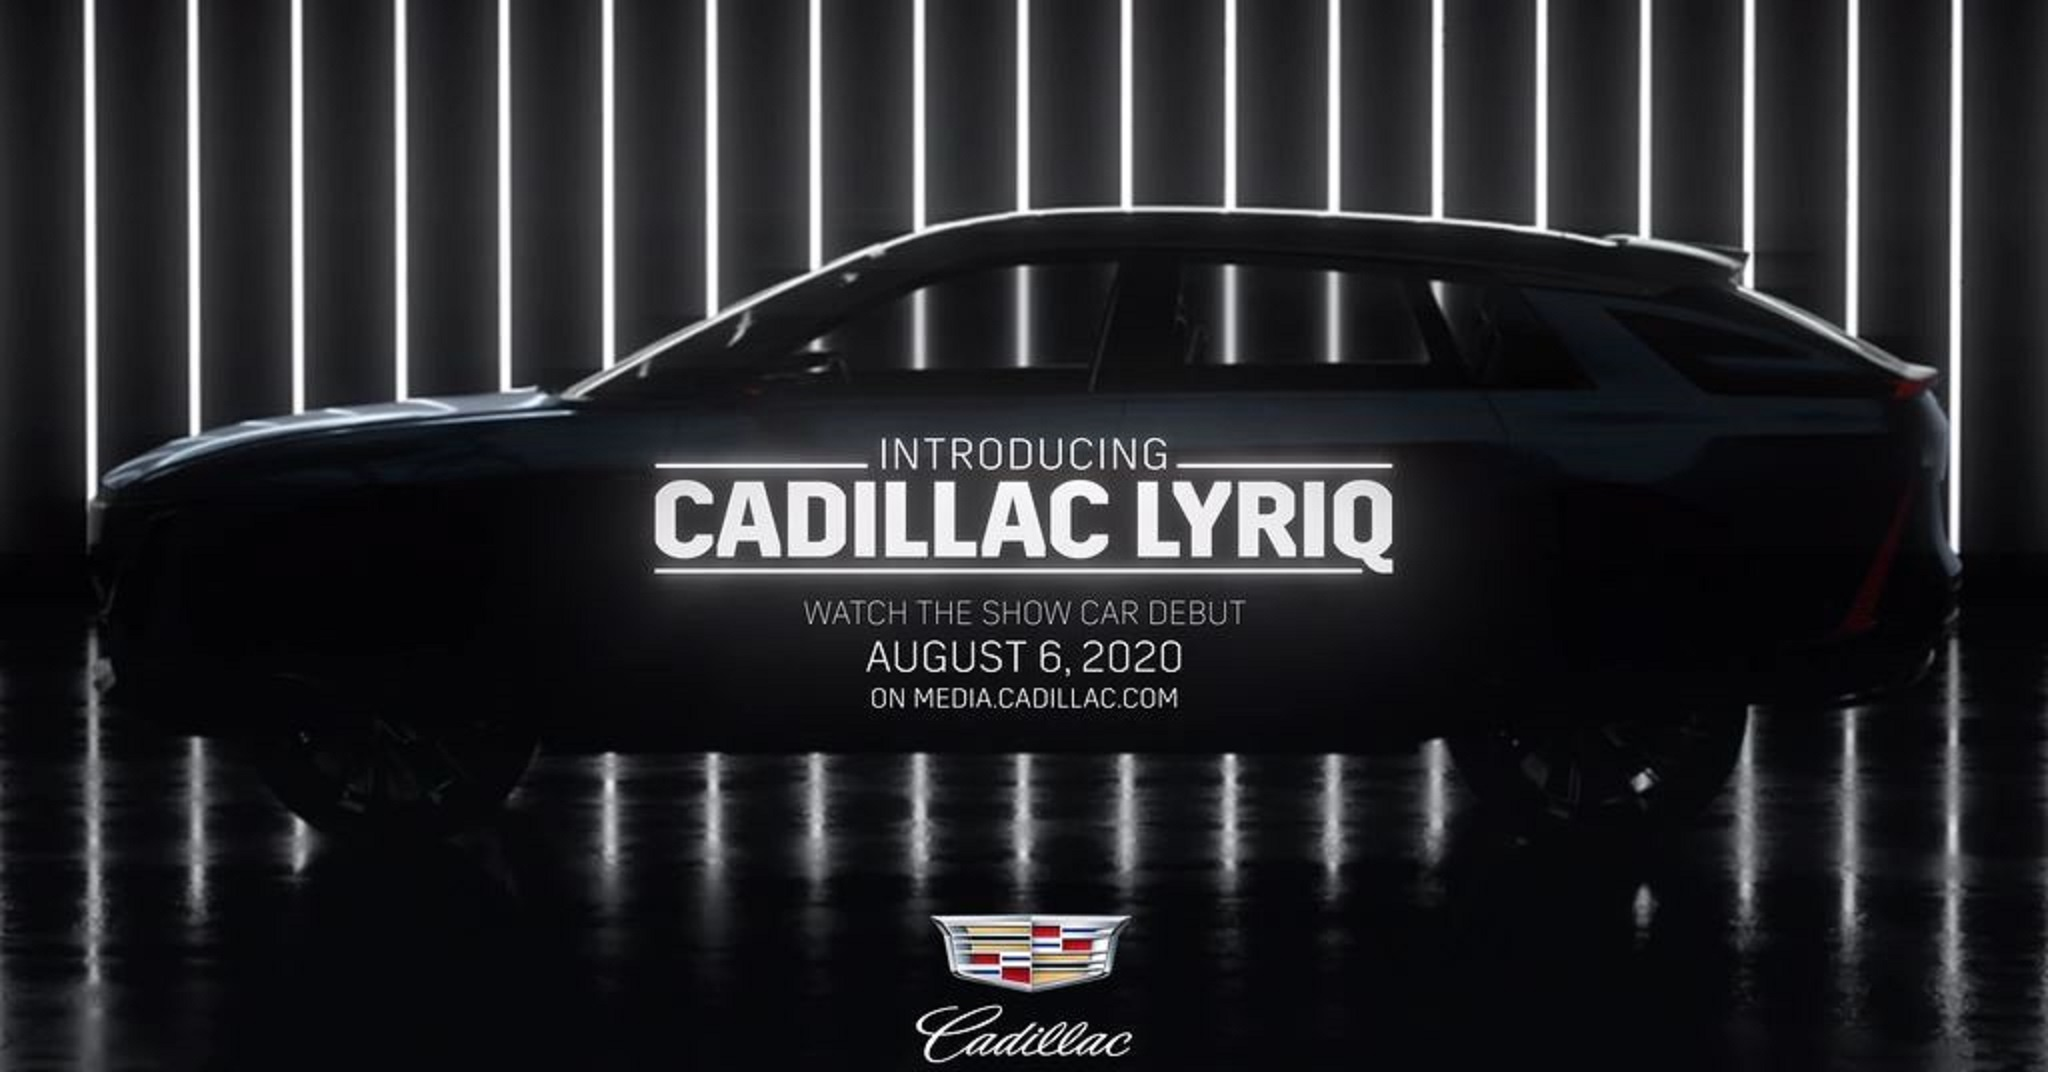 Cadillac Keeps Pushing the Boundaries of Innovation